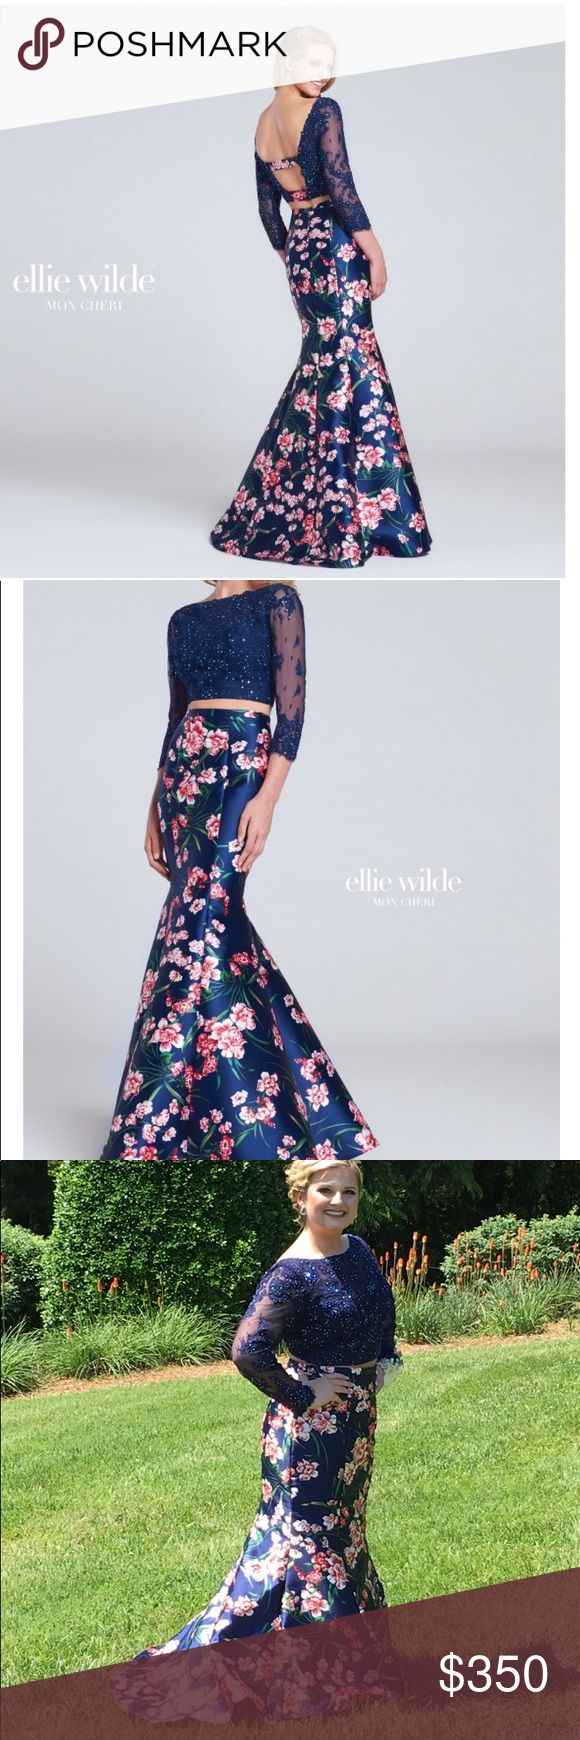 """GORGEOUS Navy & Floral Two-Piece Prom Dress Two-piece long sleeve lace and printed Mikado trumpet dress with bateau neckline that continues over the shoulders into a tapered back with printed Mikado straps. Top is covered in lace with heat set stones, an illusion neckline, sleeves, and back panels. Printed Mikado high-waisted skirt is fitted though hips and thighs then flares into a full skirt and sweep train. Hemmed to fit 5'4"""" with flats. Top was taken in on shoulders and bottom strap…"""